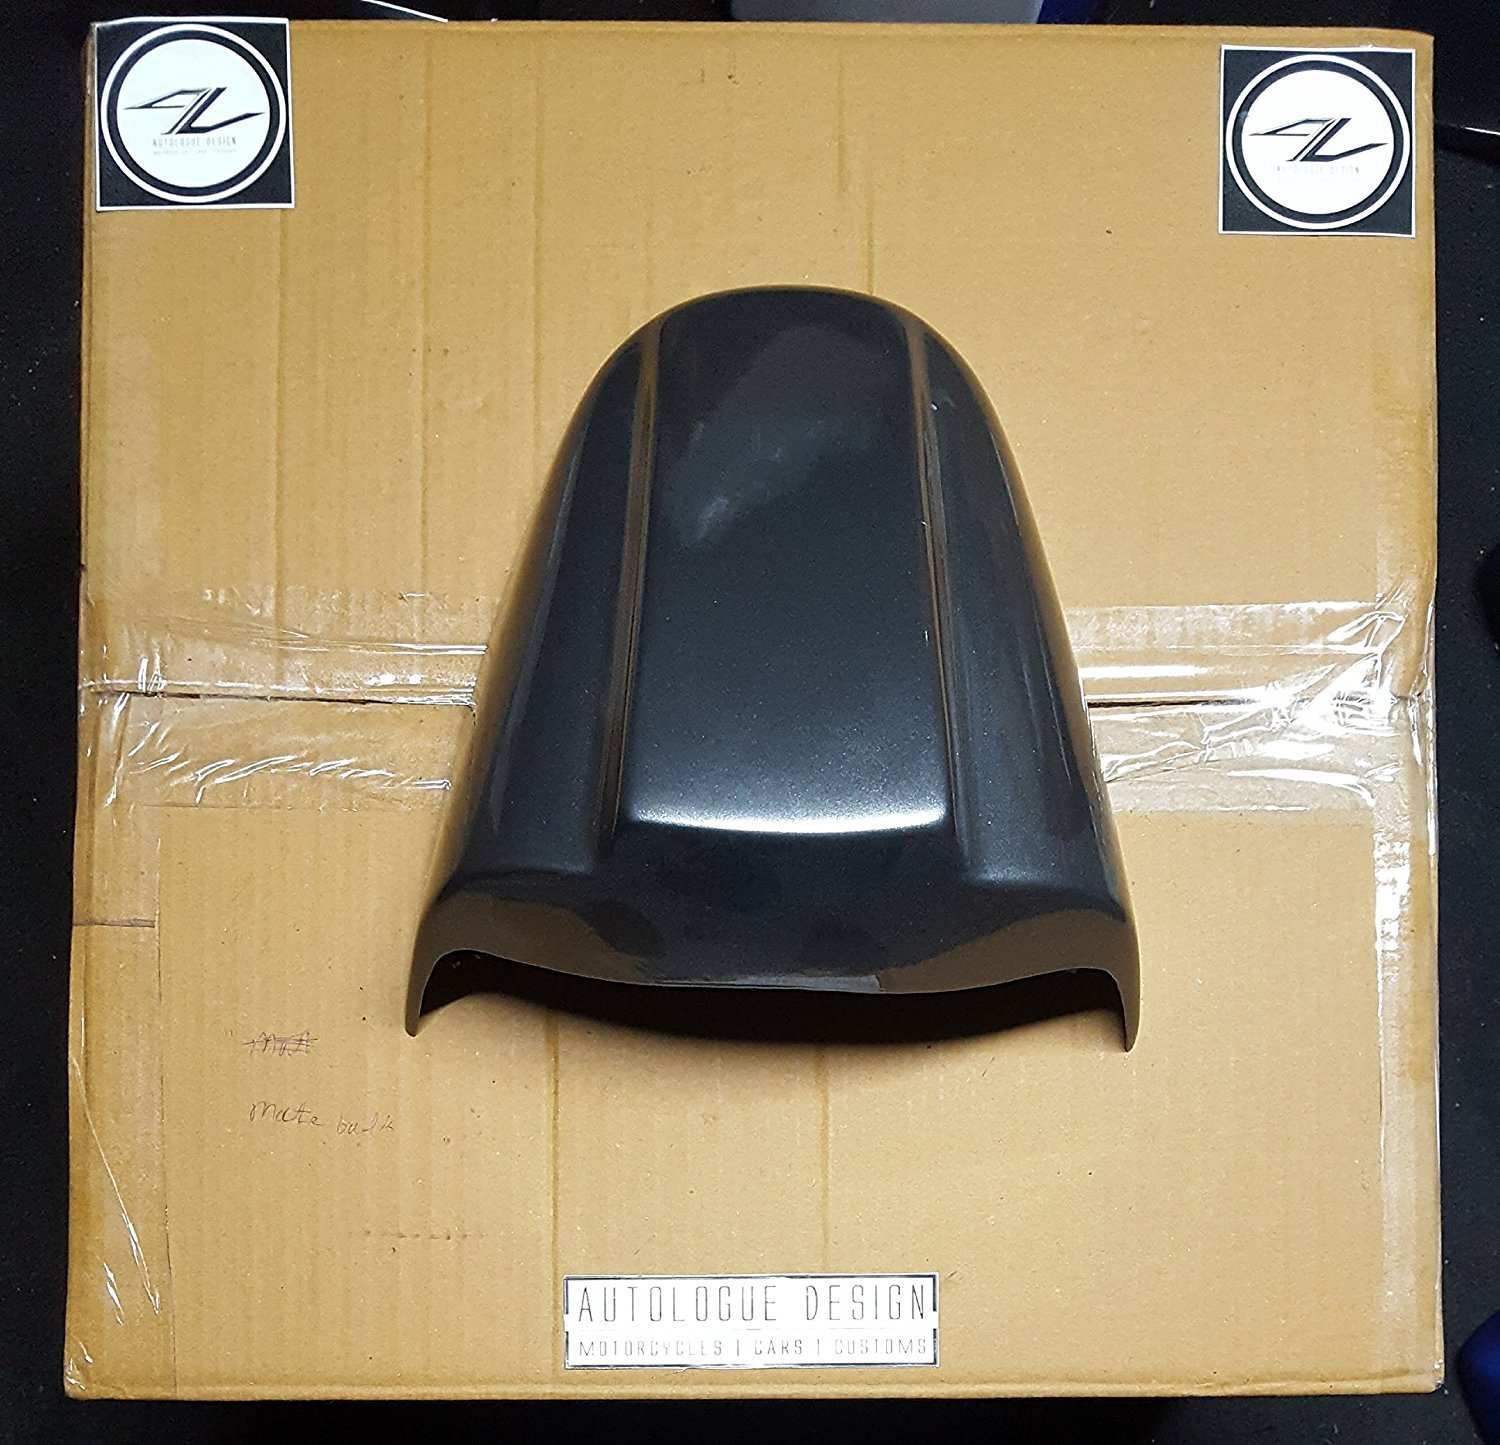 Suzuki Gixxer Sf Rear Seat Cowl Black Car Motorbike Modified